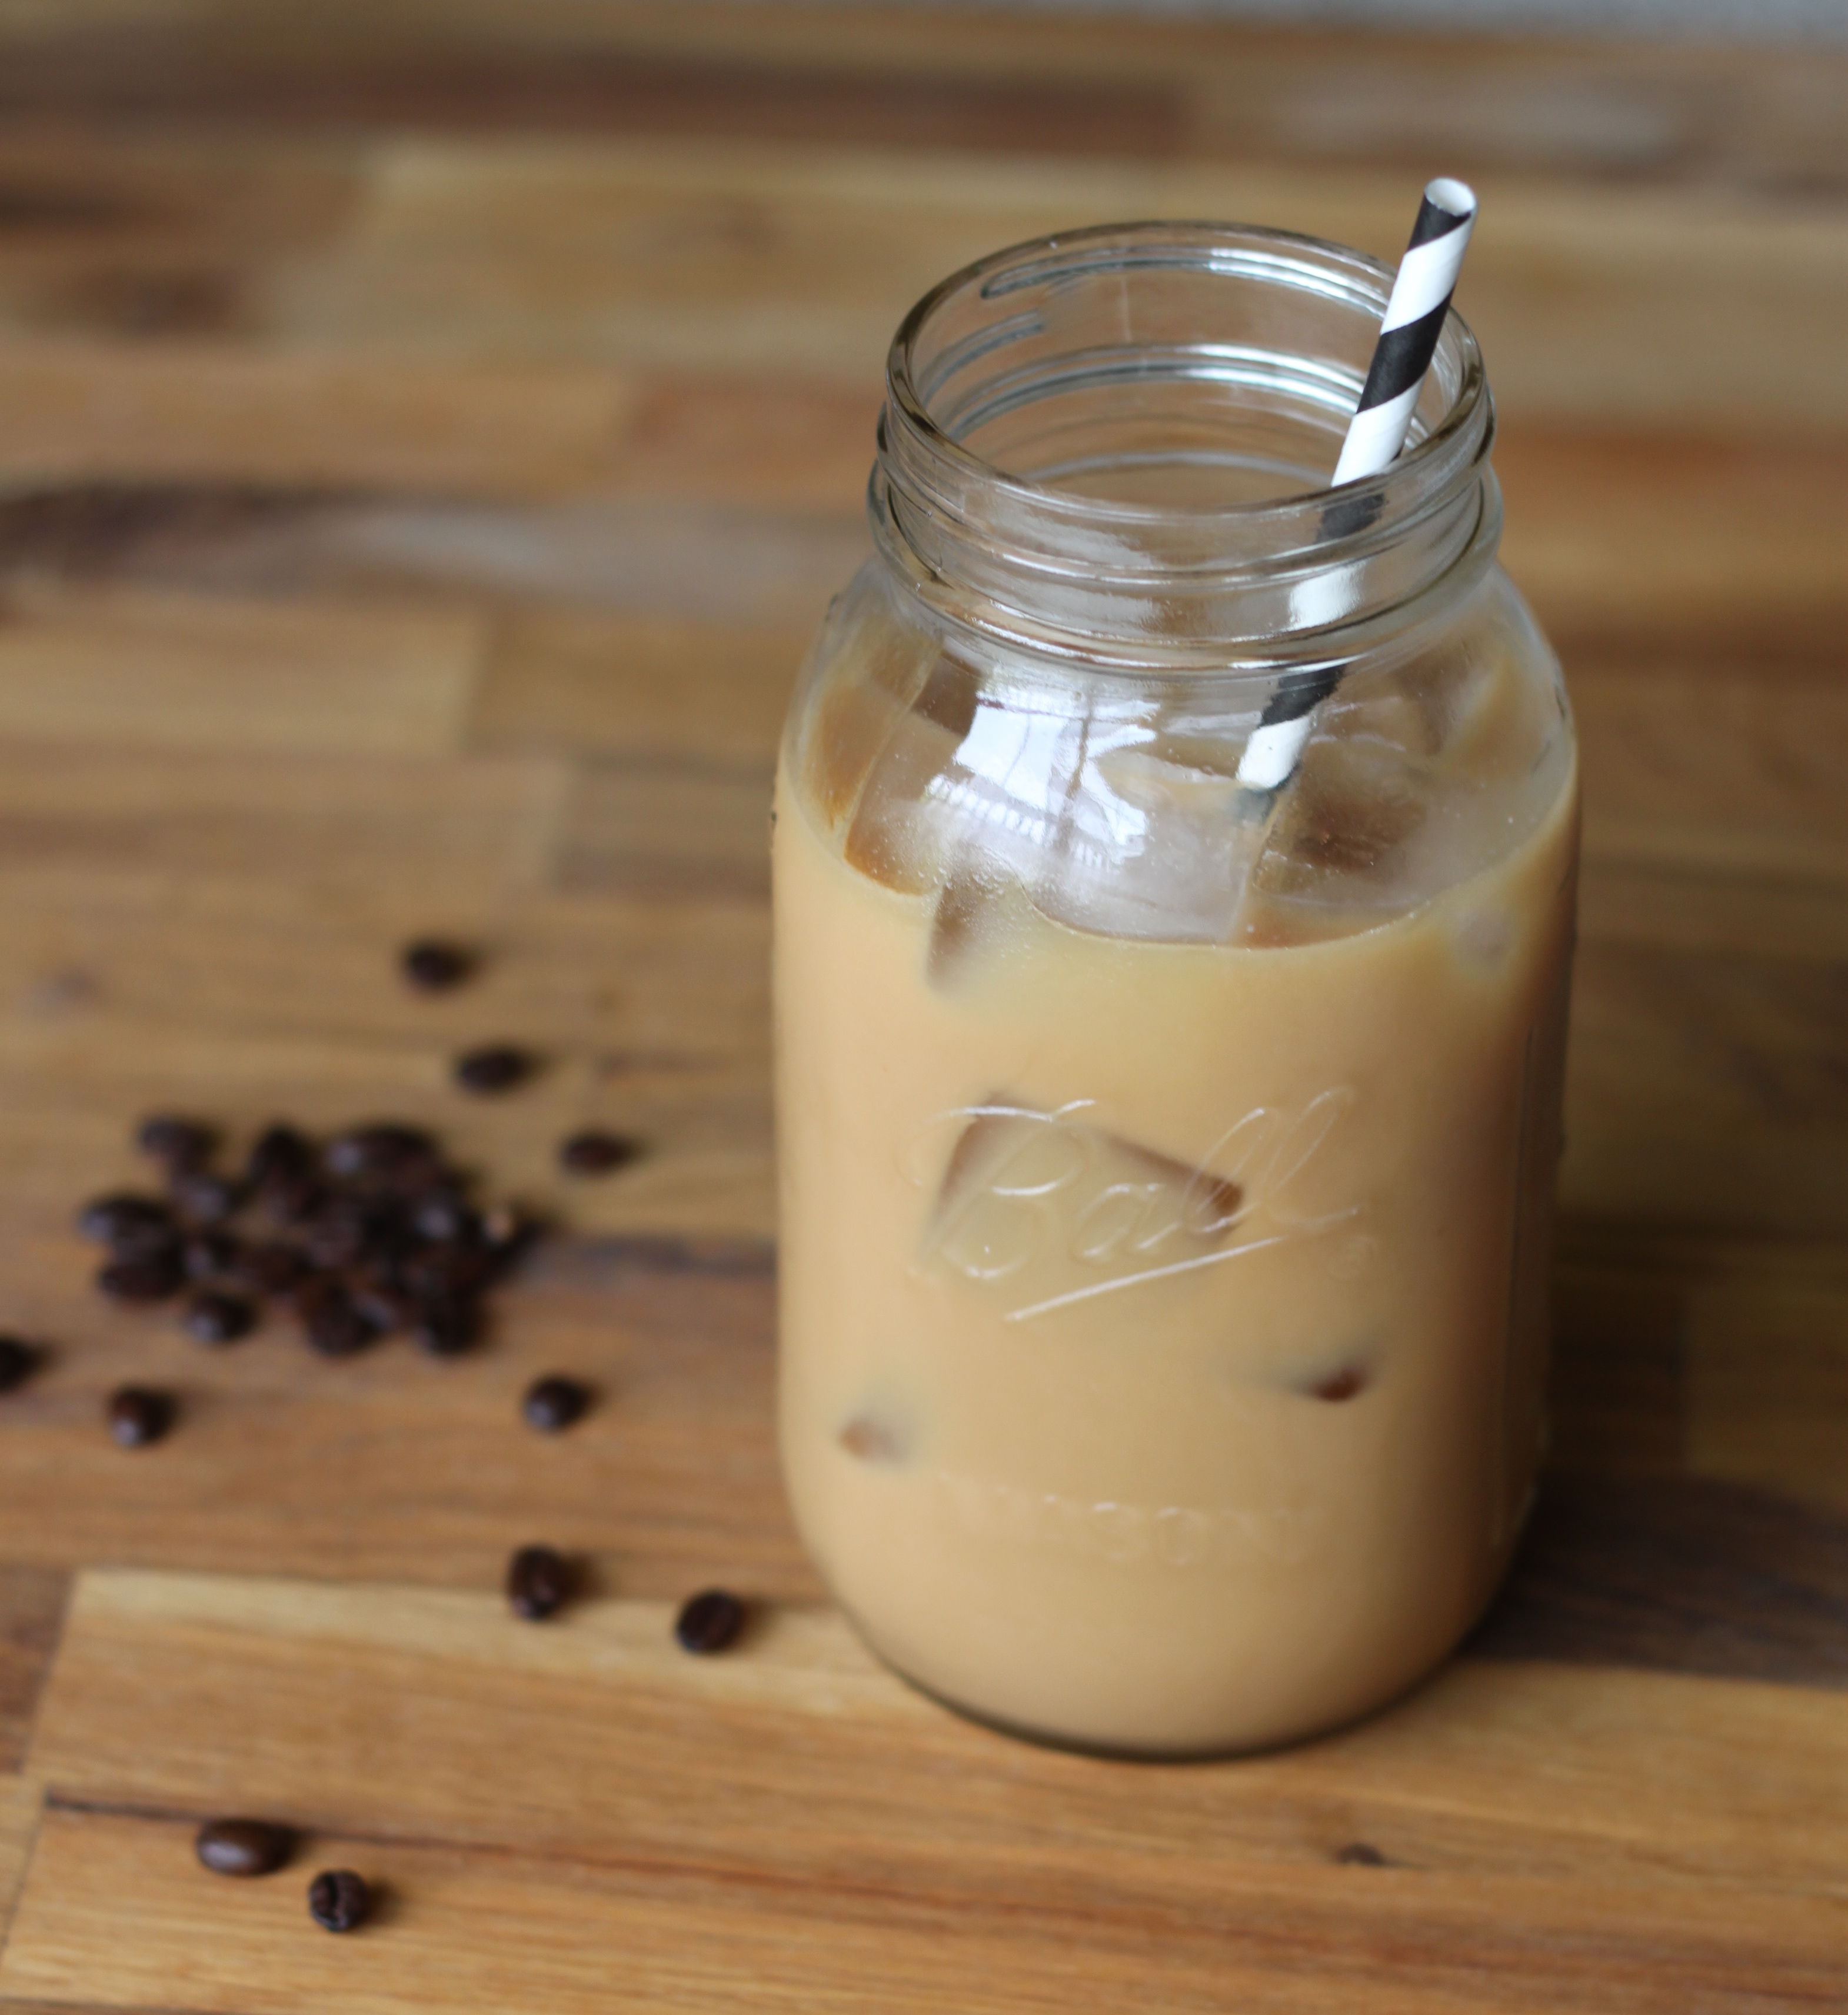 Place a filter paper inside a matching plastic filter cup, such as those used for making single-cup brews, and add roughly 5 tablespoons of ground coffee, about double the amount you would use to make standard hot coffee.